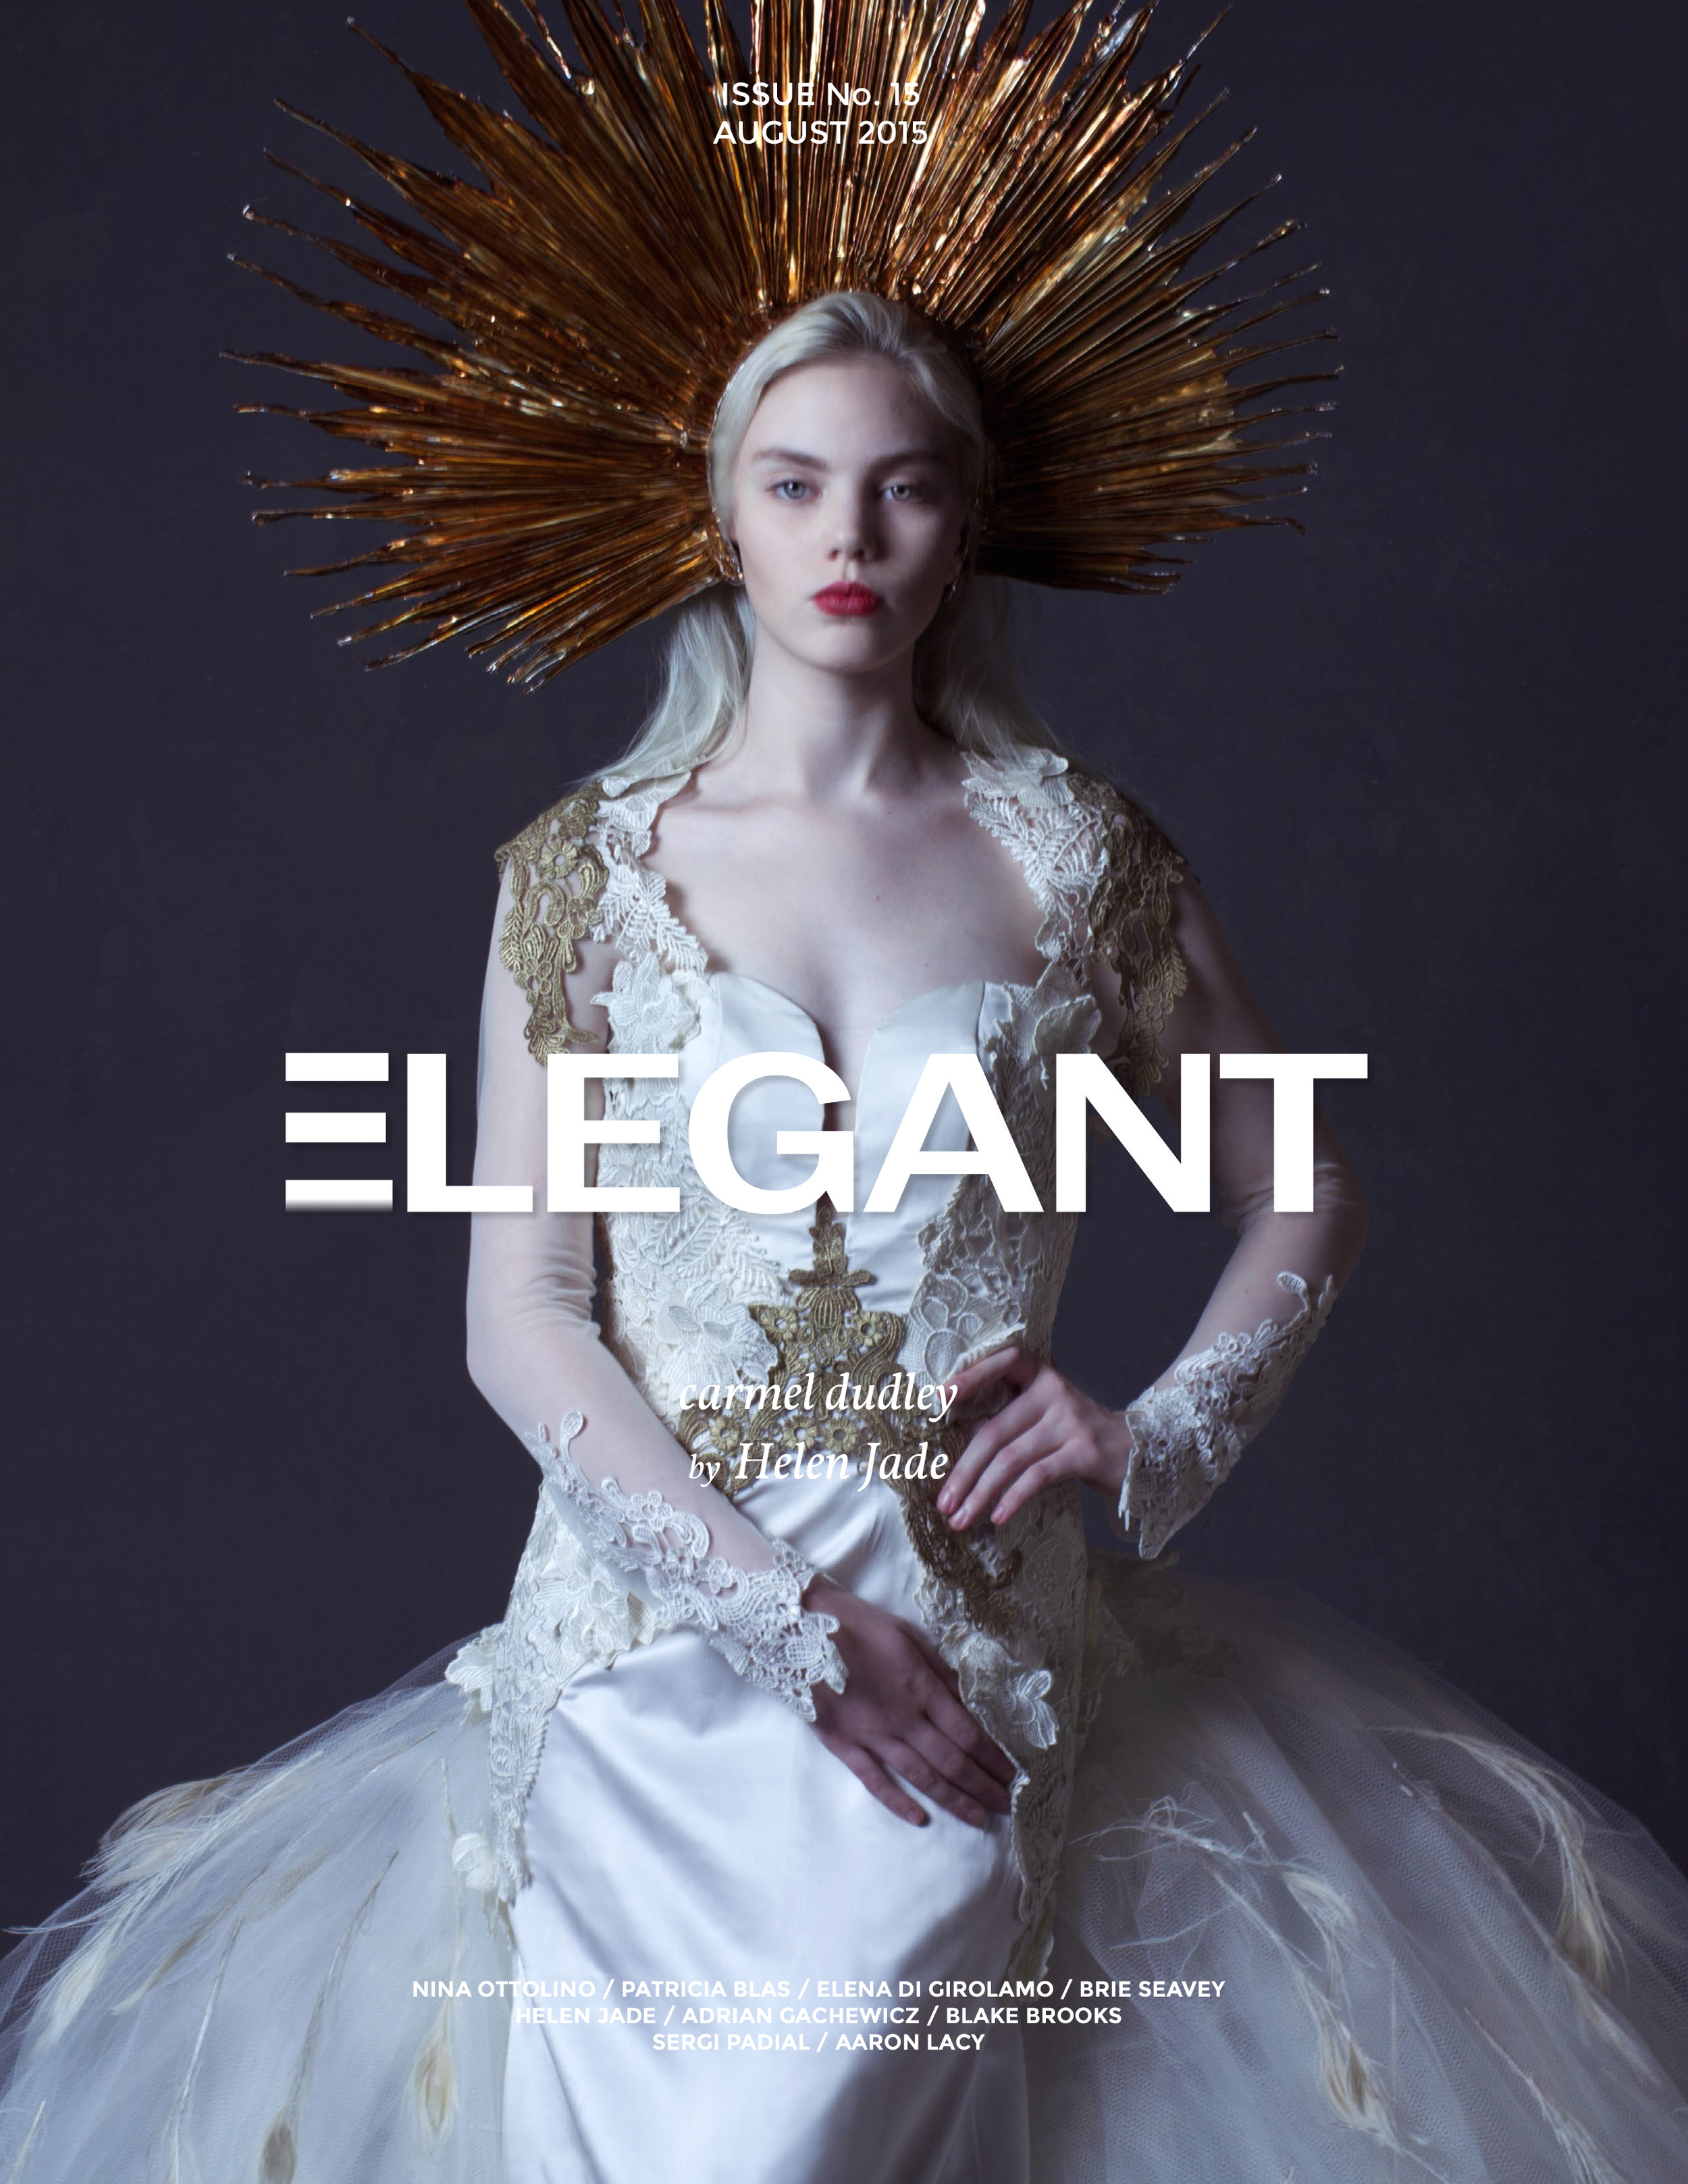 Elegant Magazine August 2015 Issue